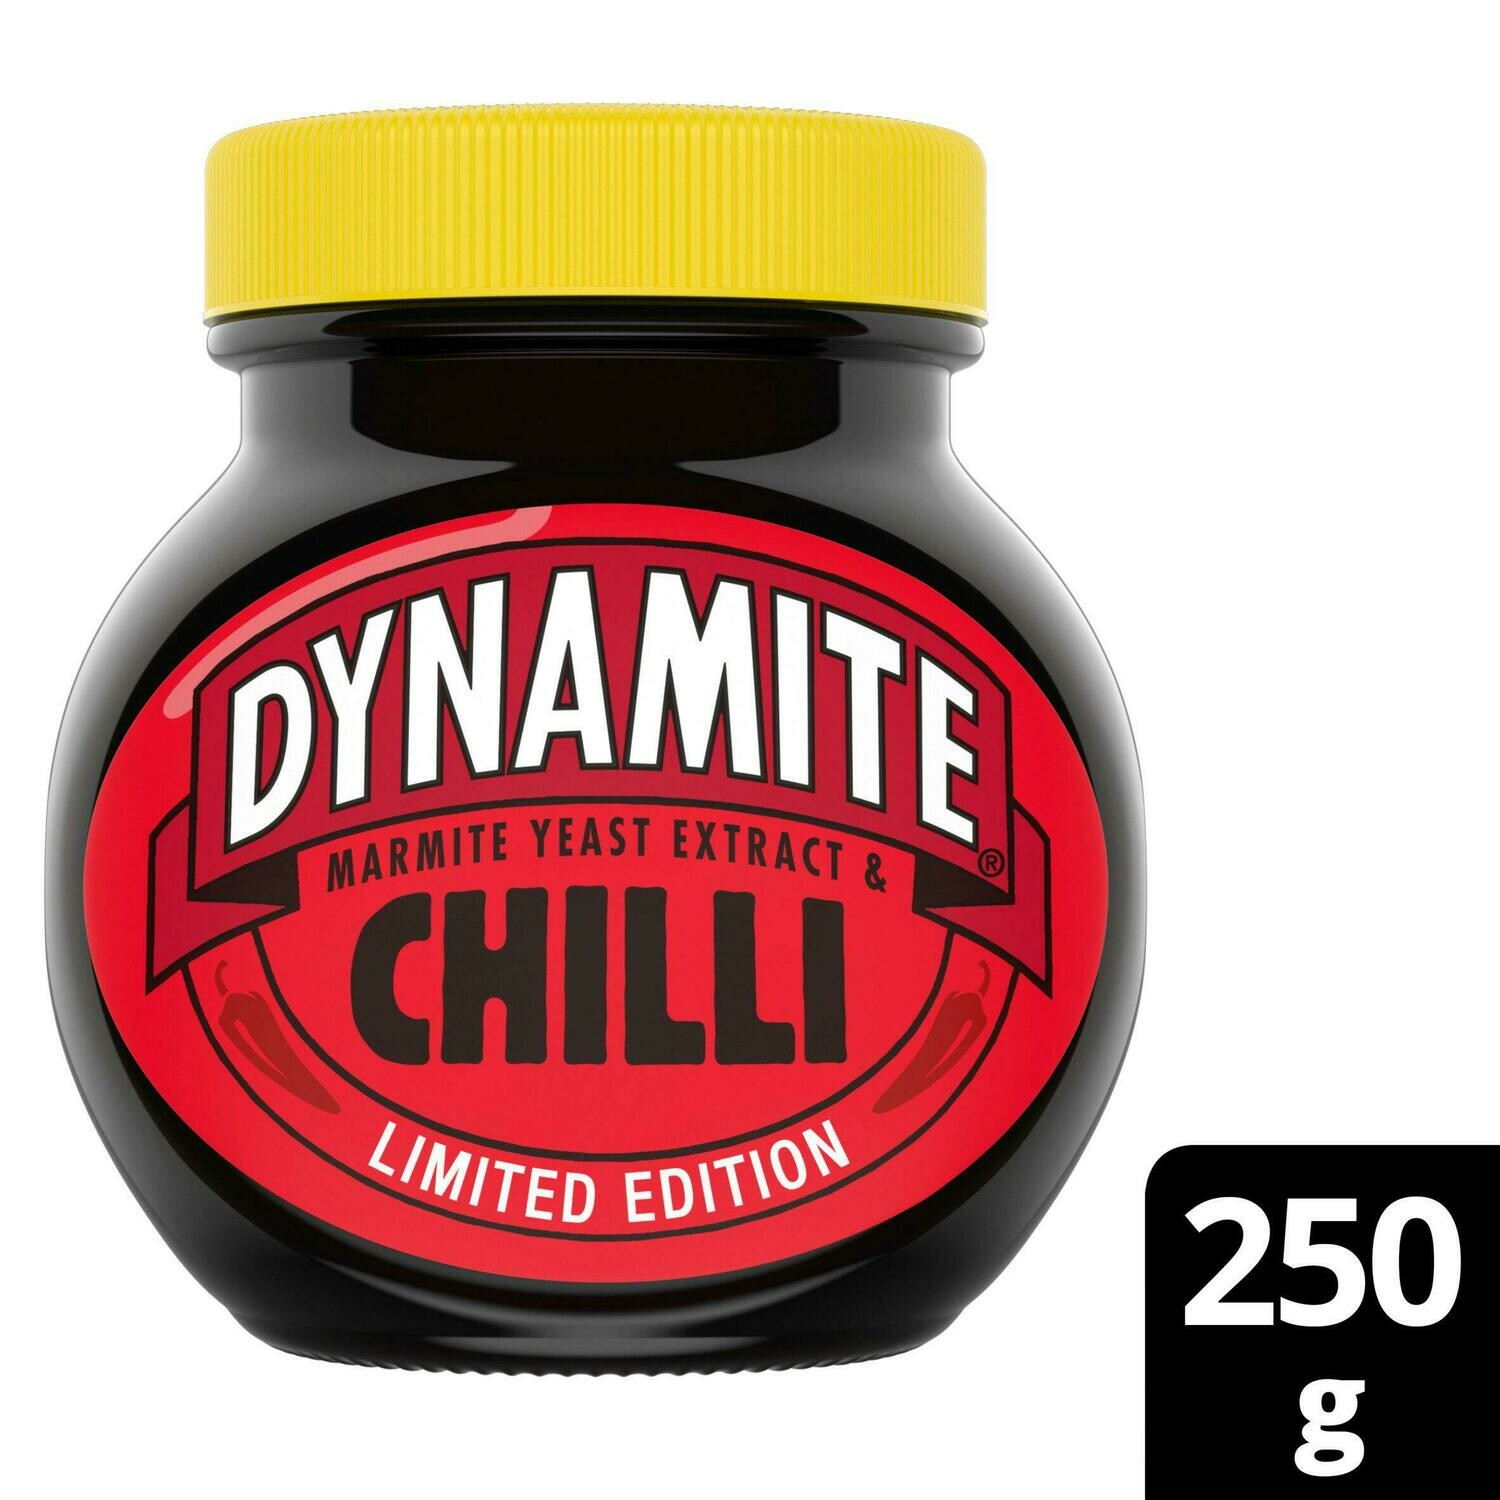 Marmite Yeast Extract (Limited Edition) Dynamite Chilli Spread [Glass Jar] 250g